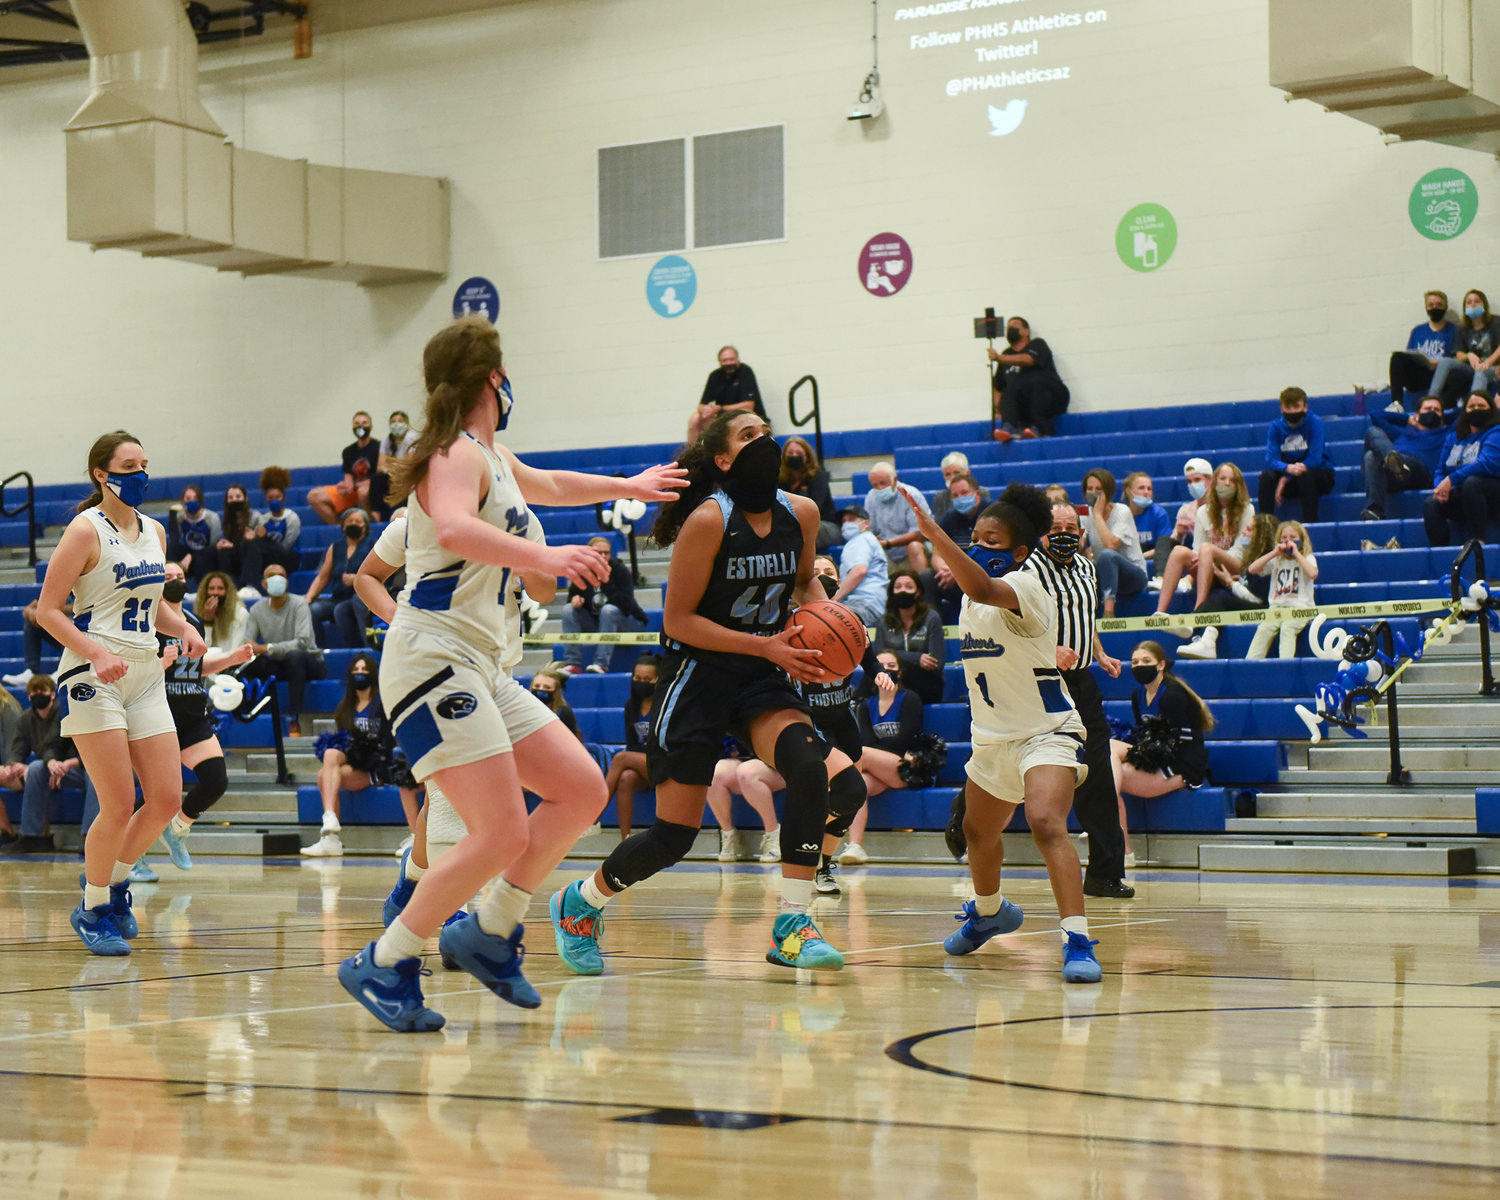 Estrella Foothills senior forward Kennedy Harper drives down the lane while Paradise Honors freshman guard Nakyah Williams (No. 1) and junior guard Addison Sandusky (No. 14) converge on her March 5 at Paradise Honors High School in Surprise. Harper is the runner up for West Valley Preps player of the year.